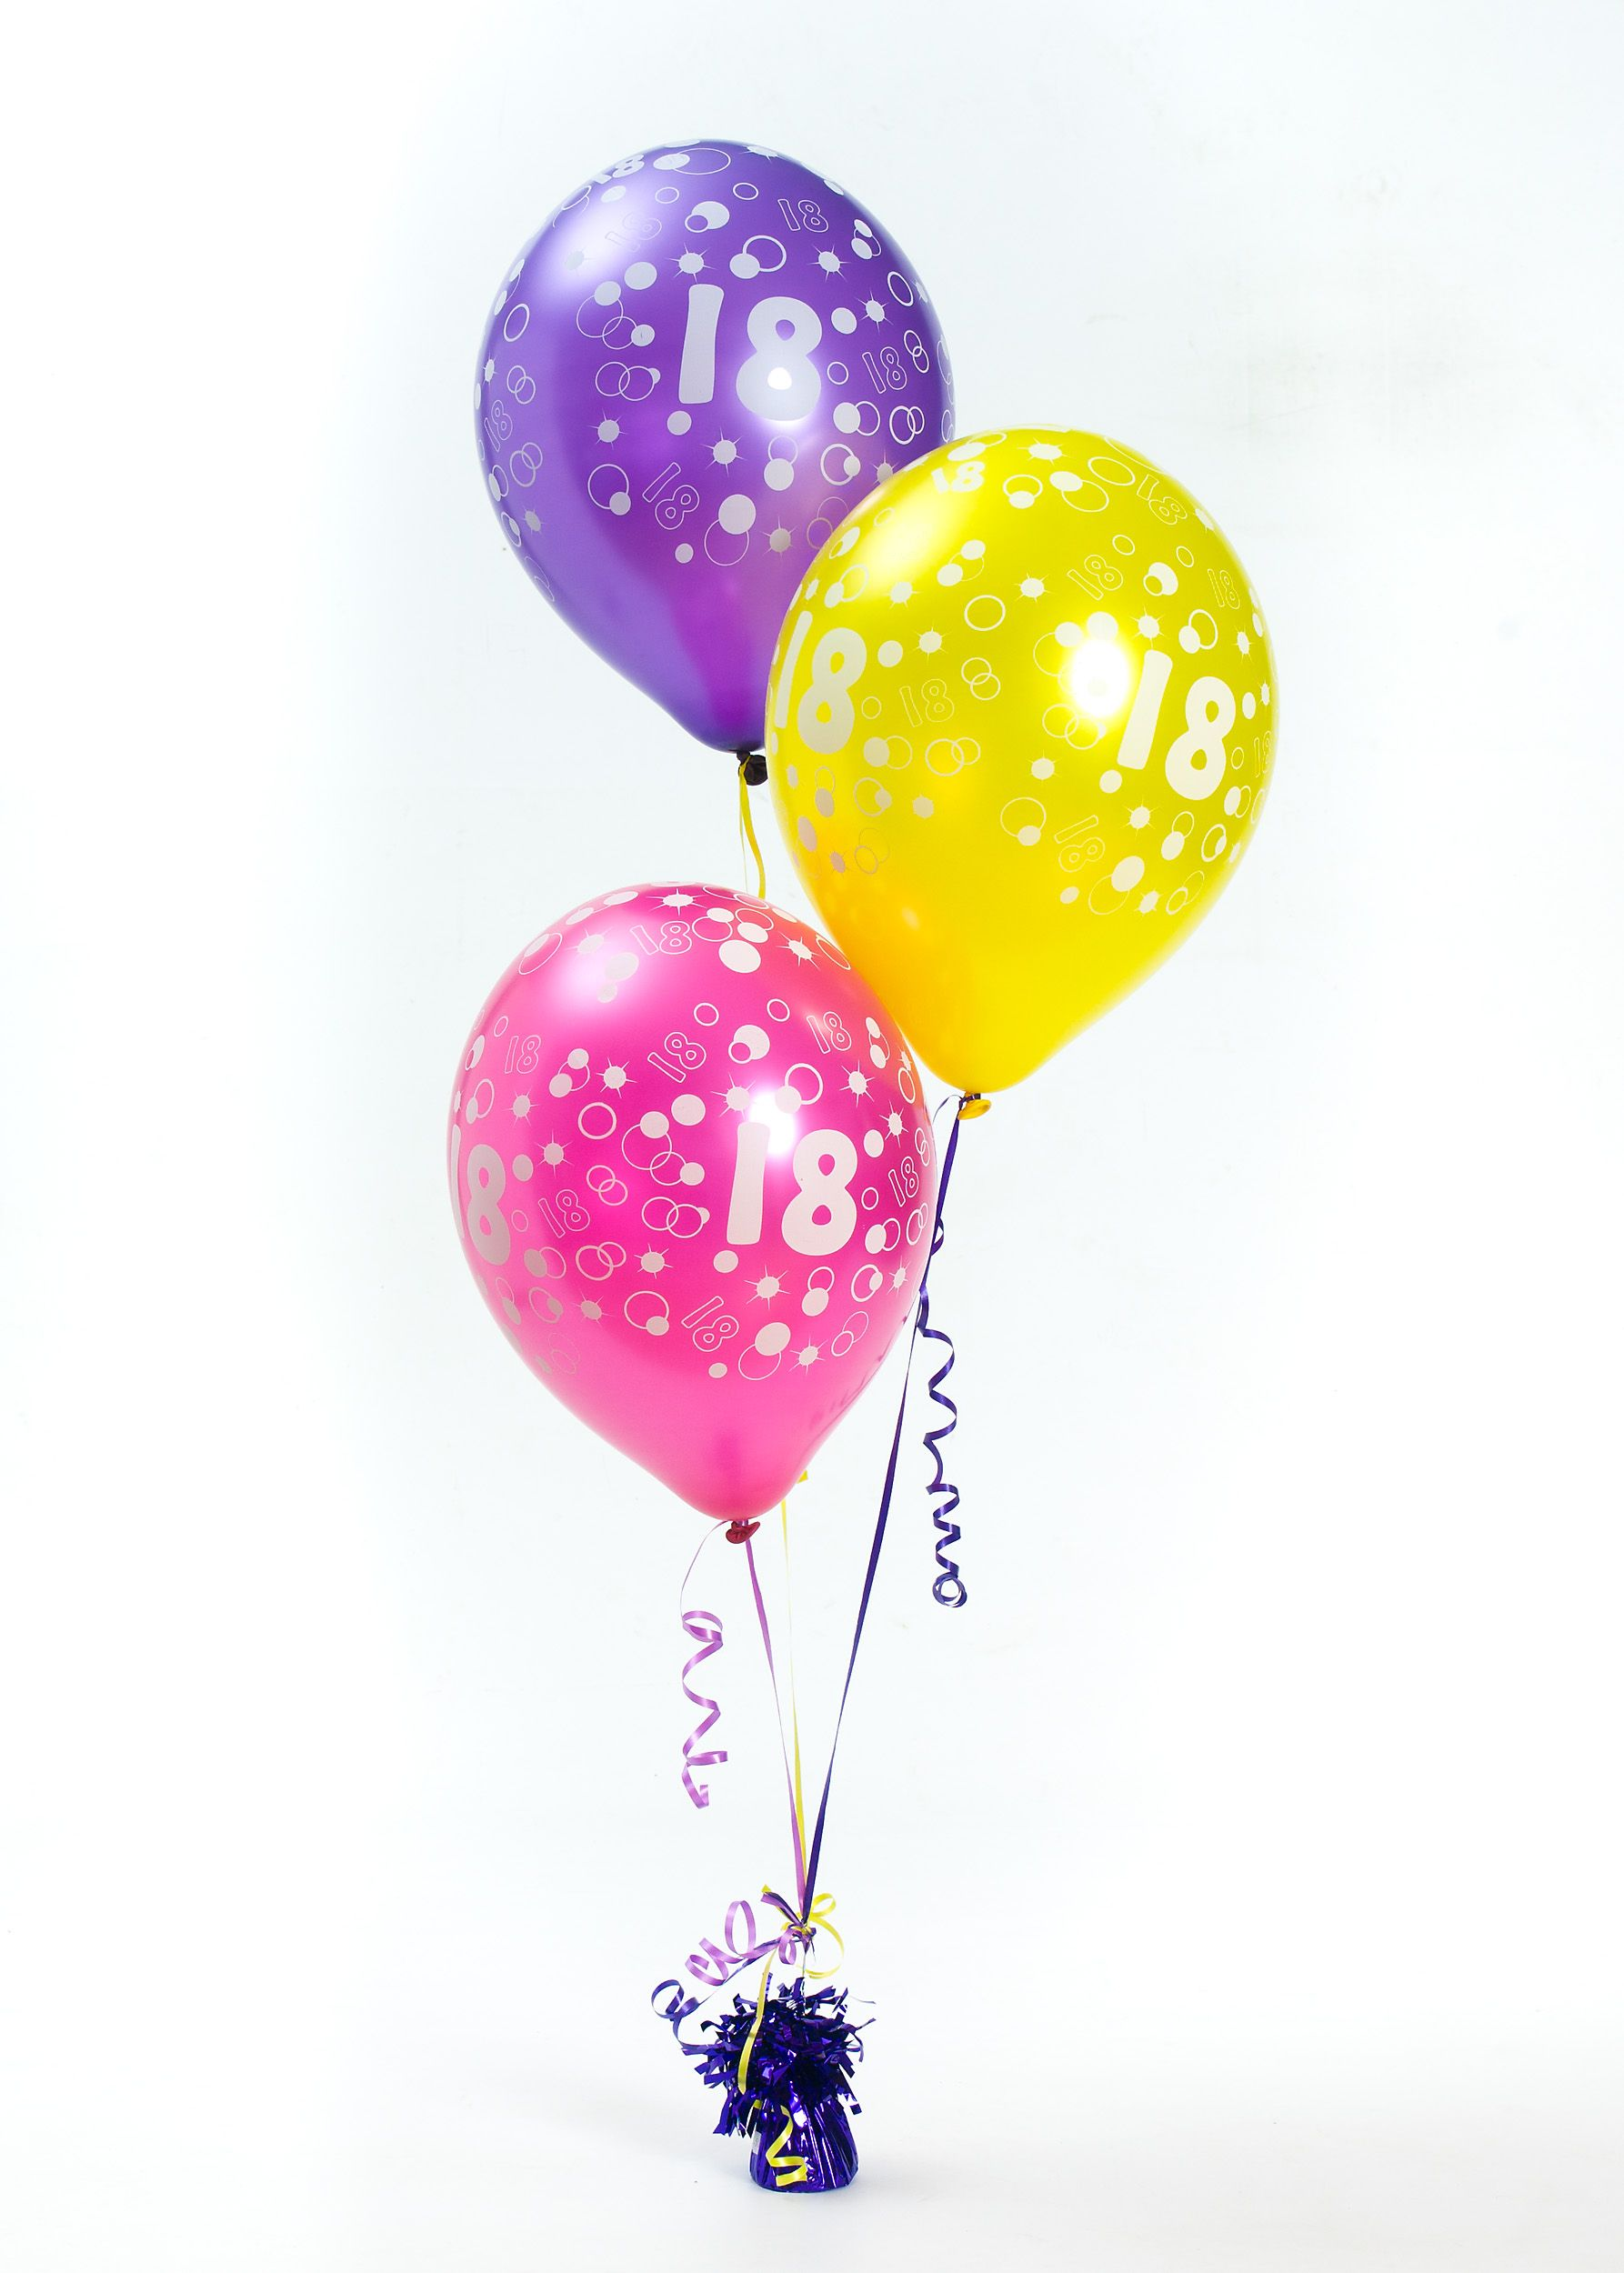 Balloon Arrangement For An 18th Birthday Party Includes Pinkyellow And Purple Balloons